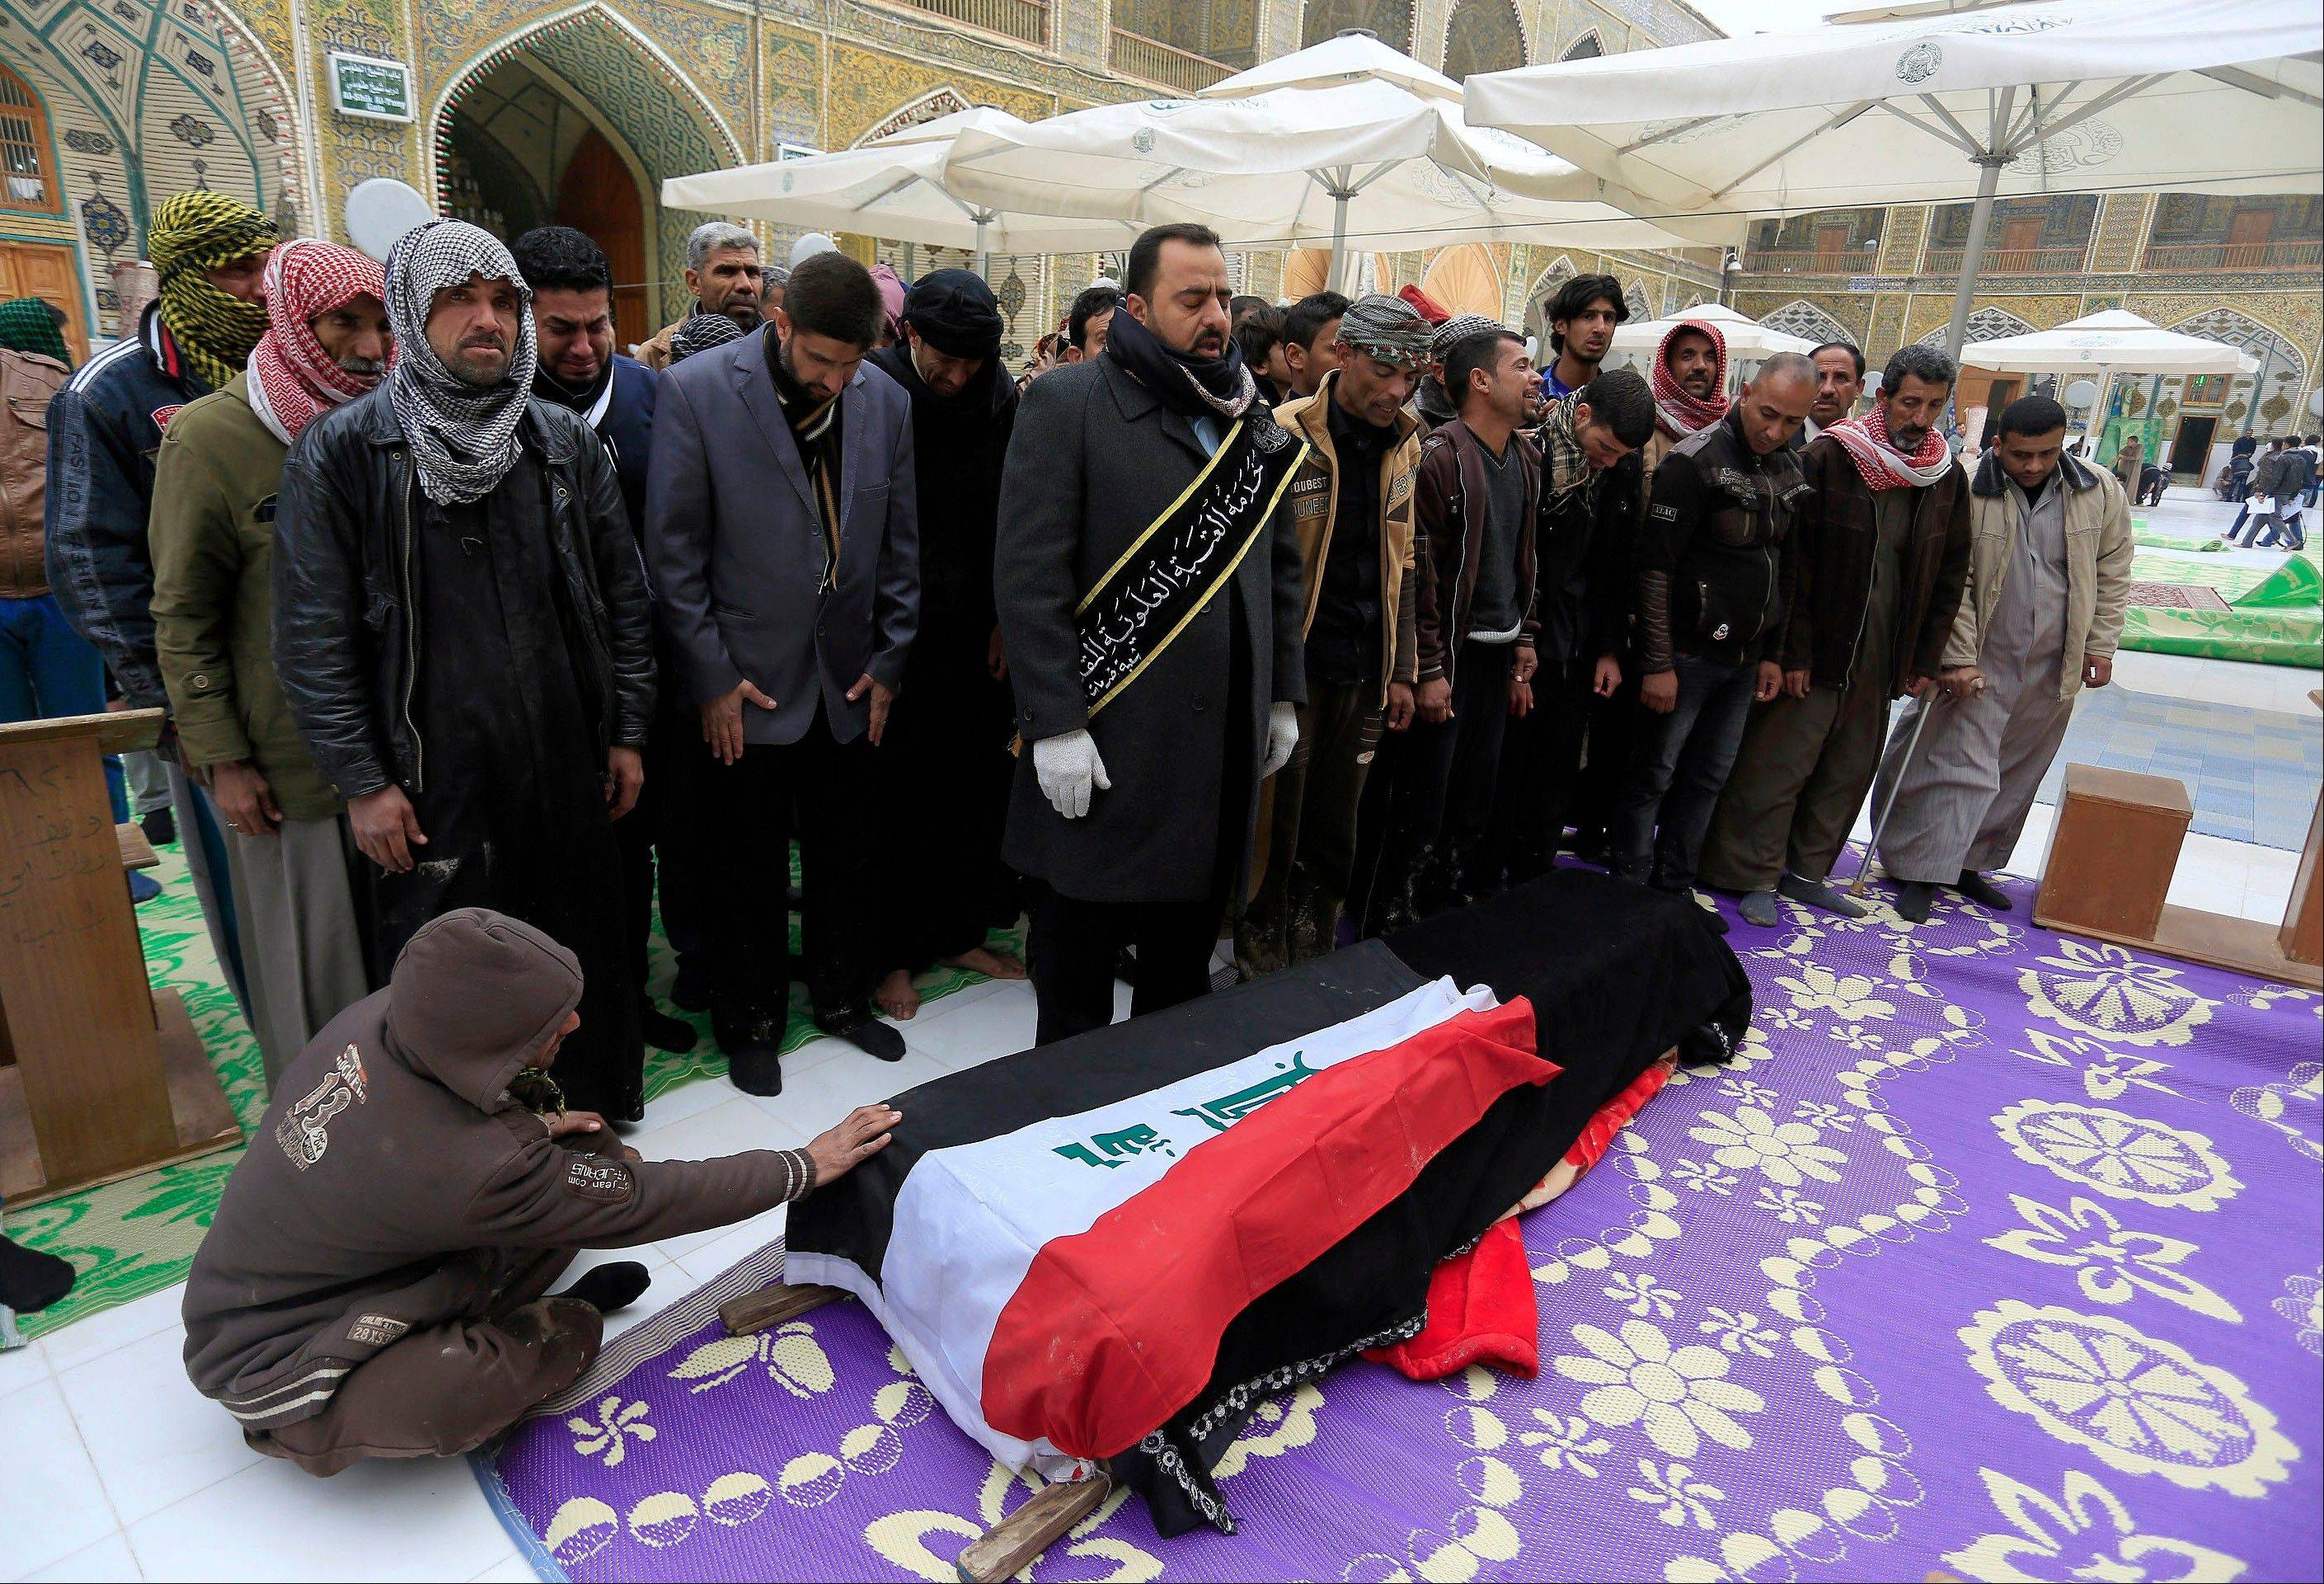 Mourners pray over the flag-draped coffin of Iraqi soldier Layth Ahmed, who was killed during the clashes in Ramadi, during his funeral procession in the Shiite holy city of Najaf, 100 miles south of Baghdad, Iraq, Monday,